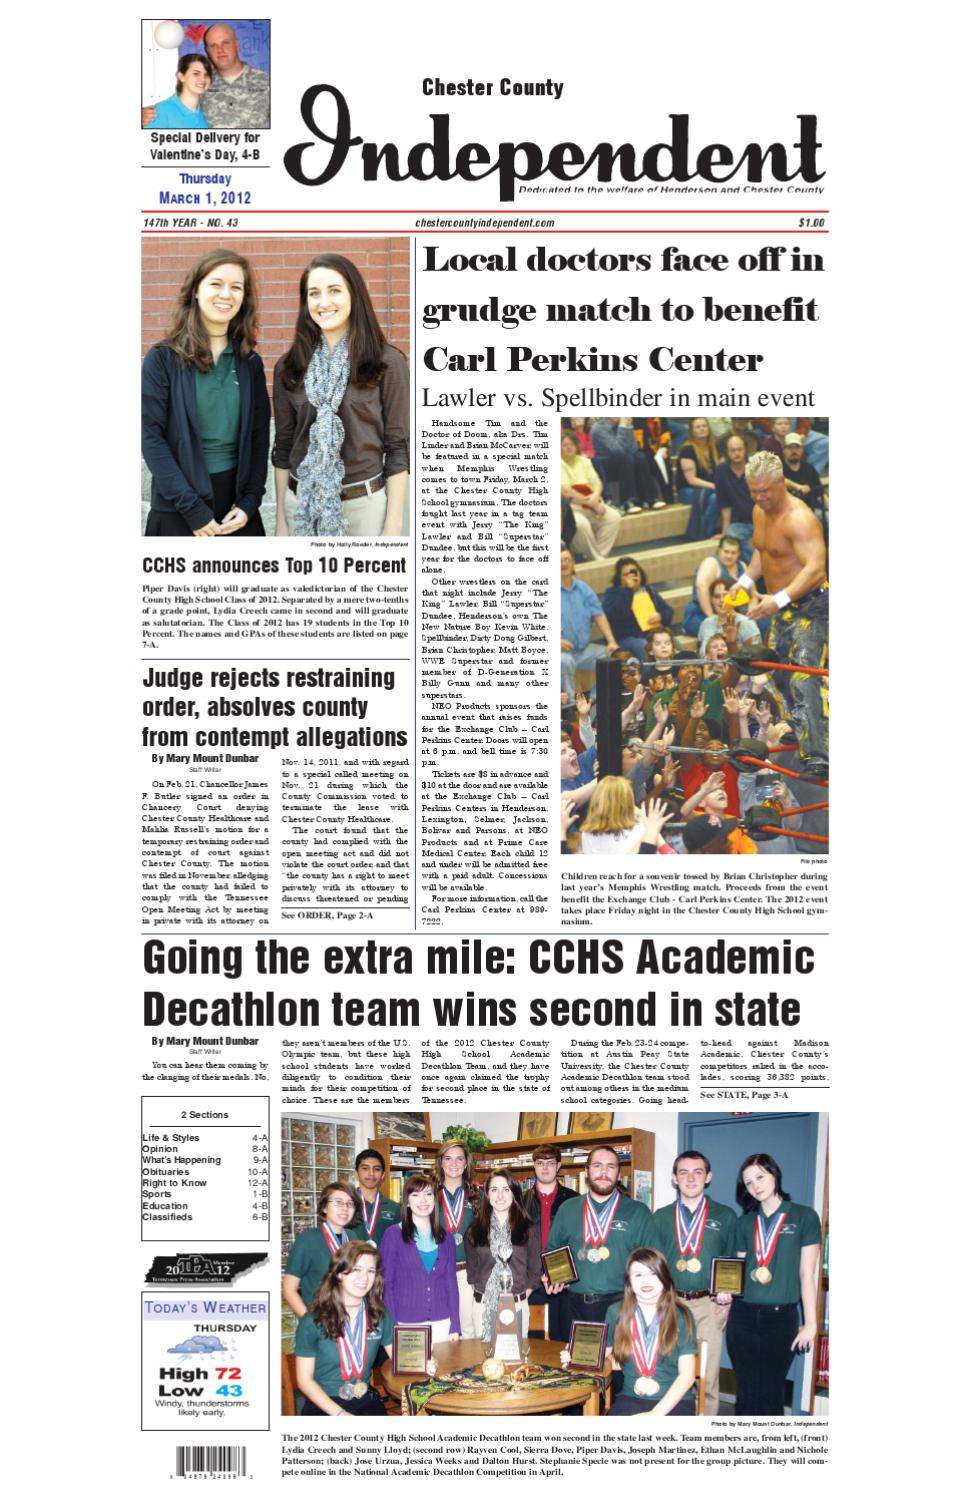 Chester County Independent 03-01-12 by Chester County